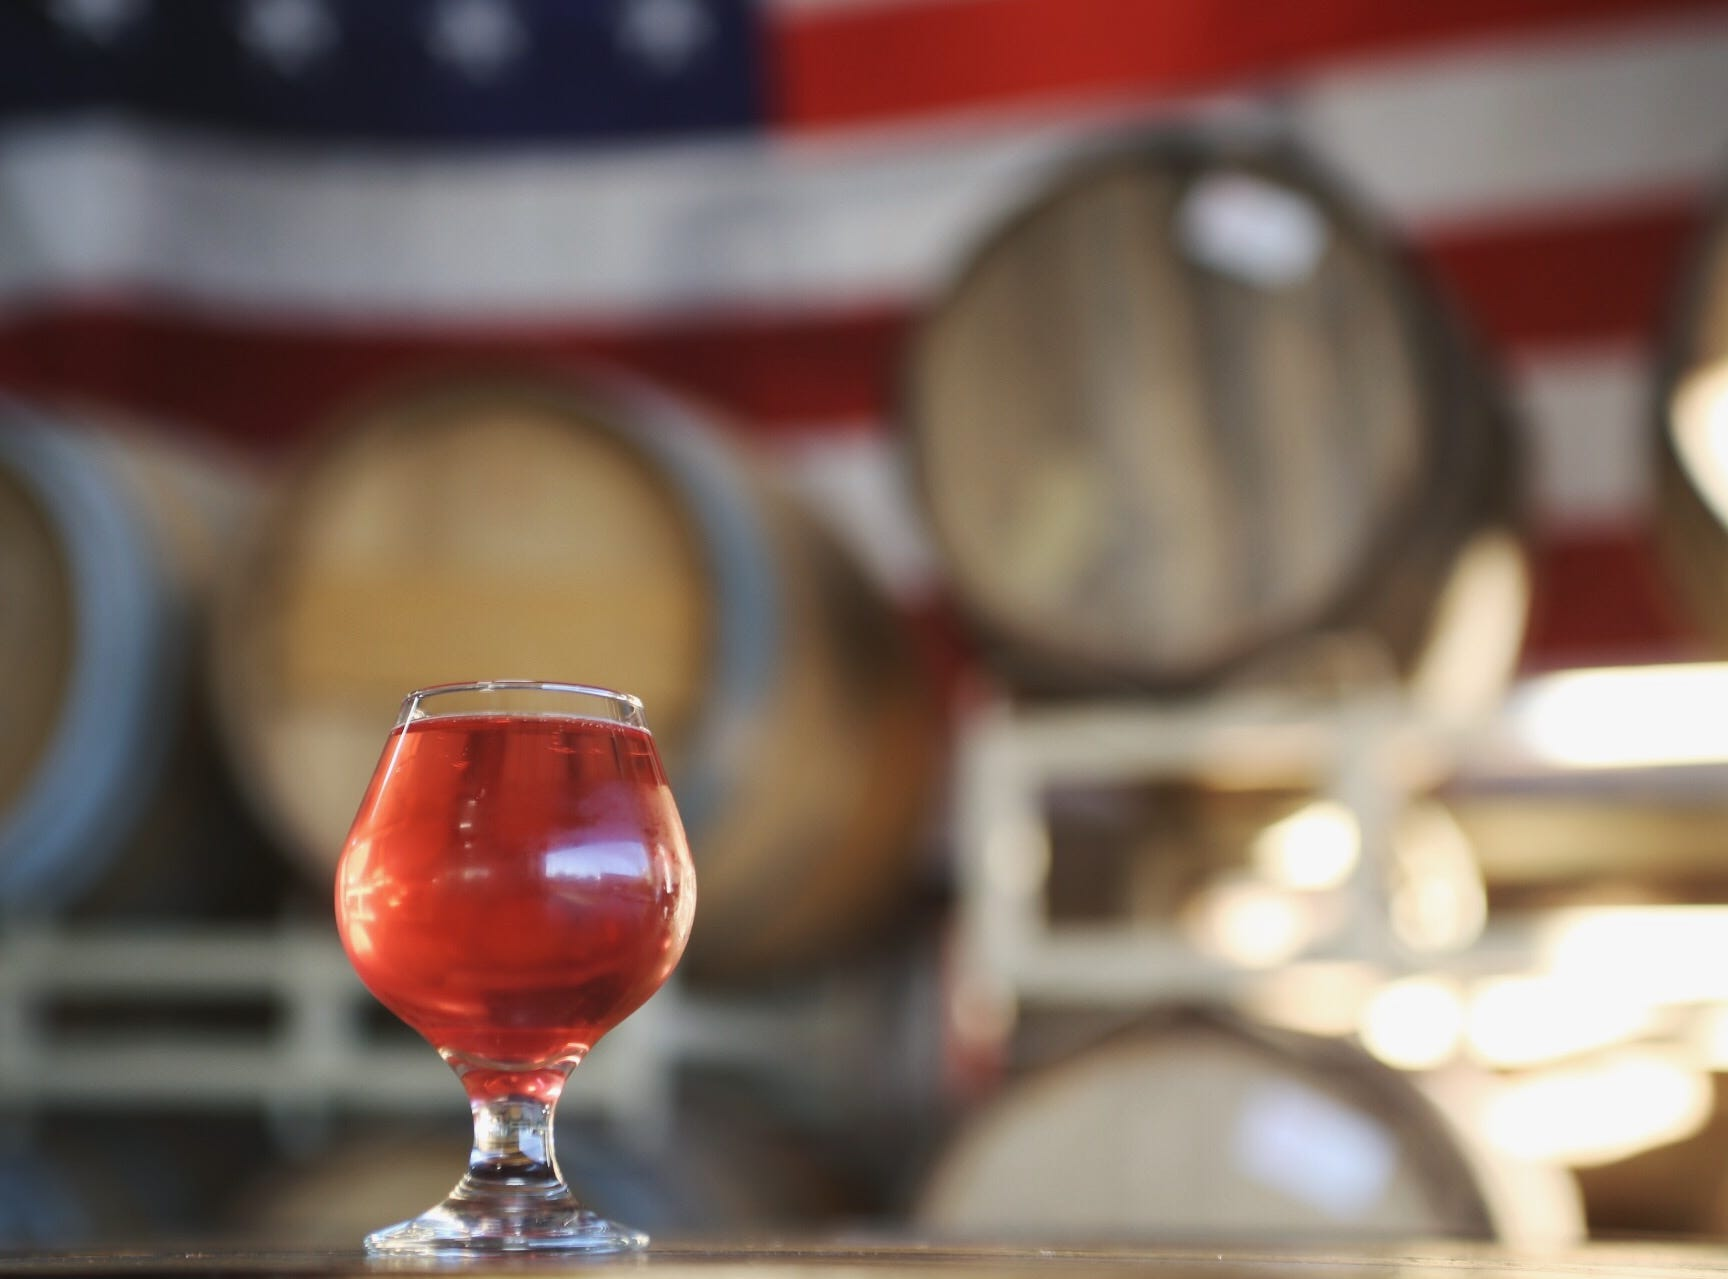 The inaugural Southwest Cider Fest takes place Nov. 10 at Cider Corps in Mesa.